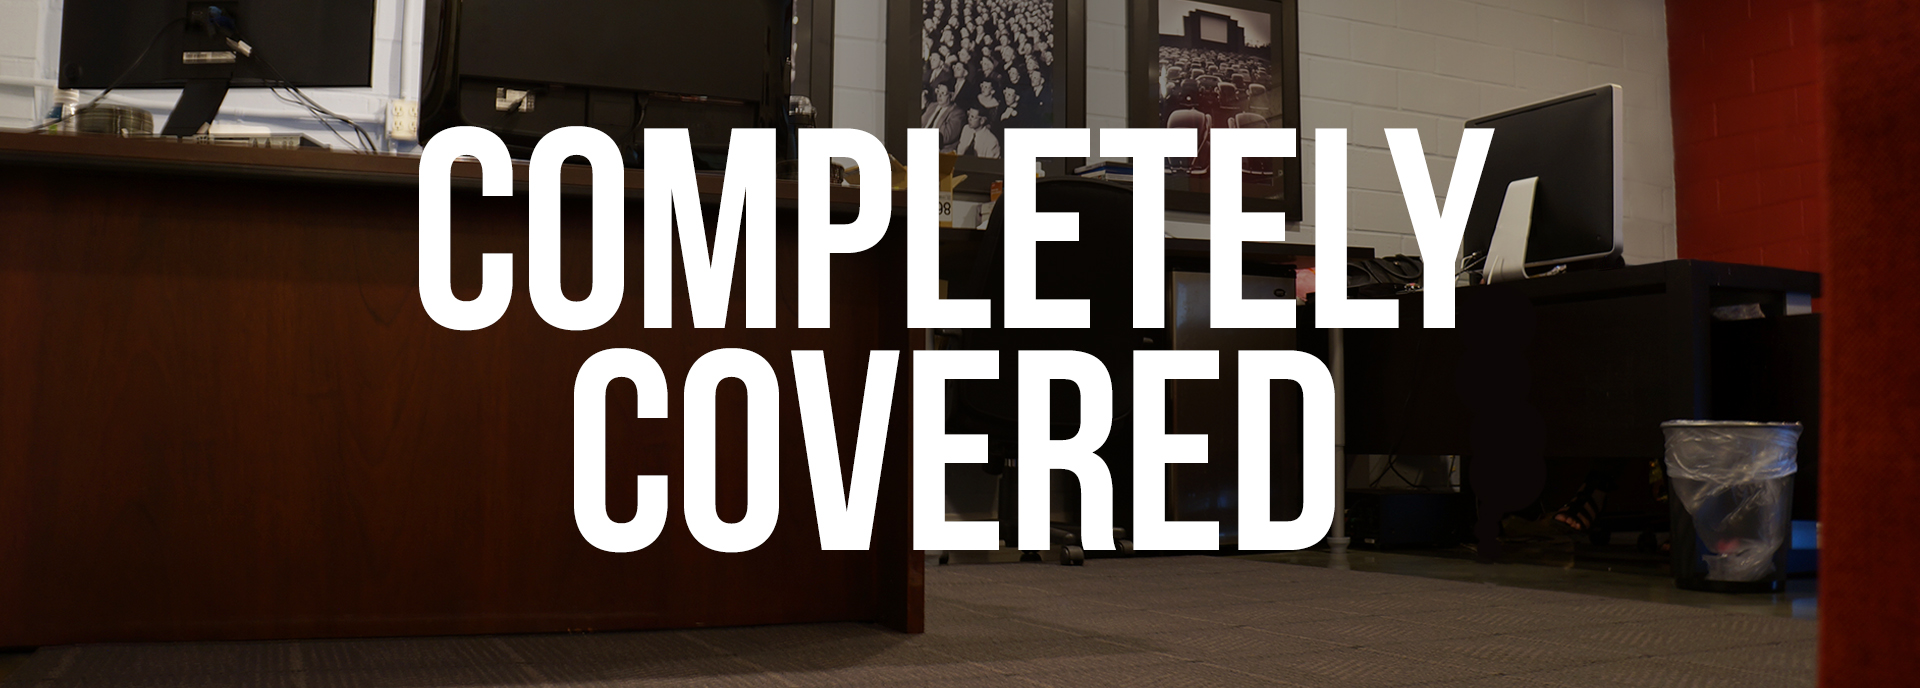 COMPLETELY_COVERED_01